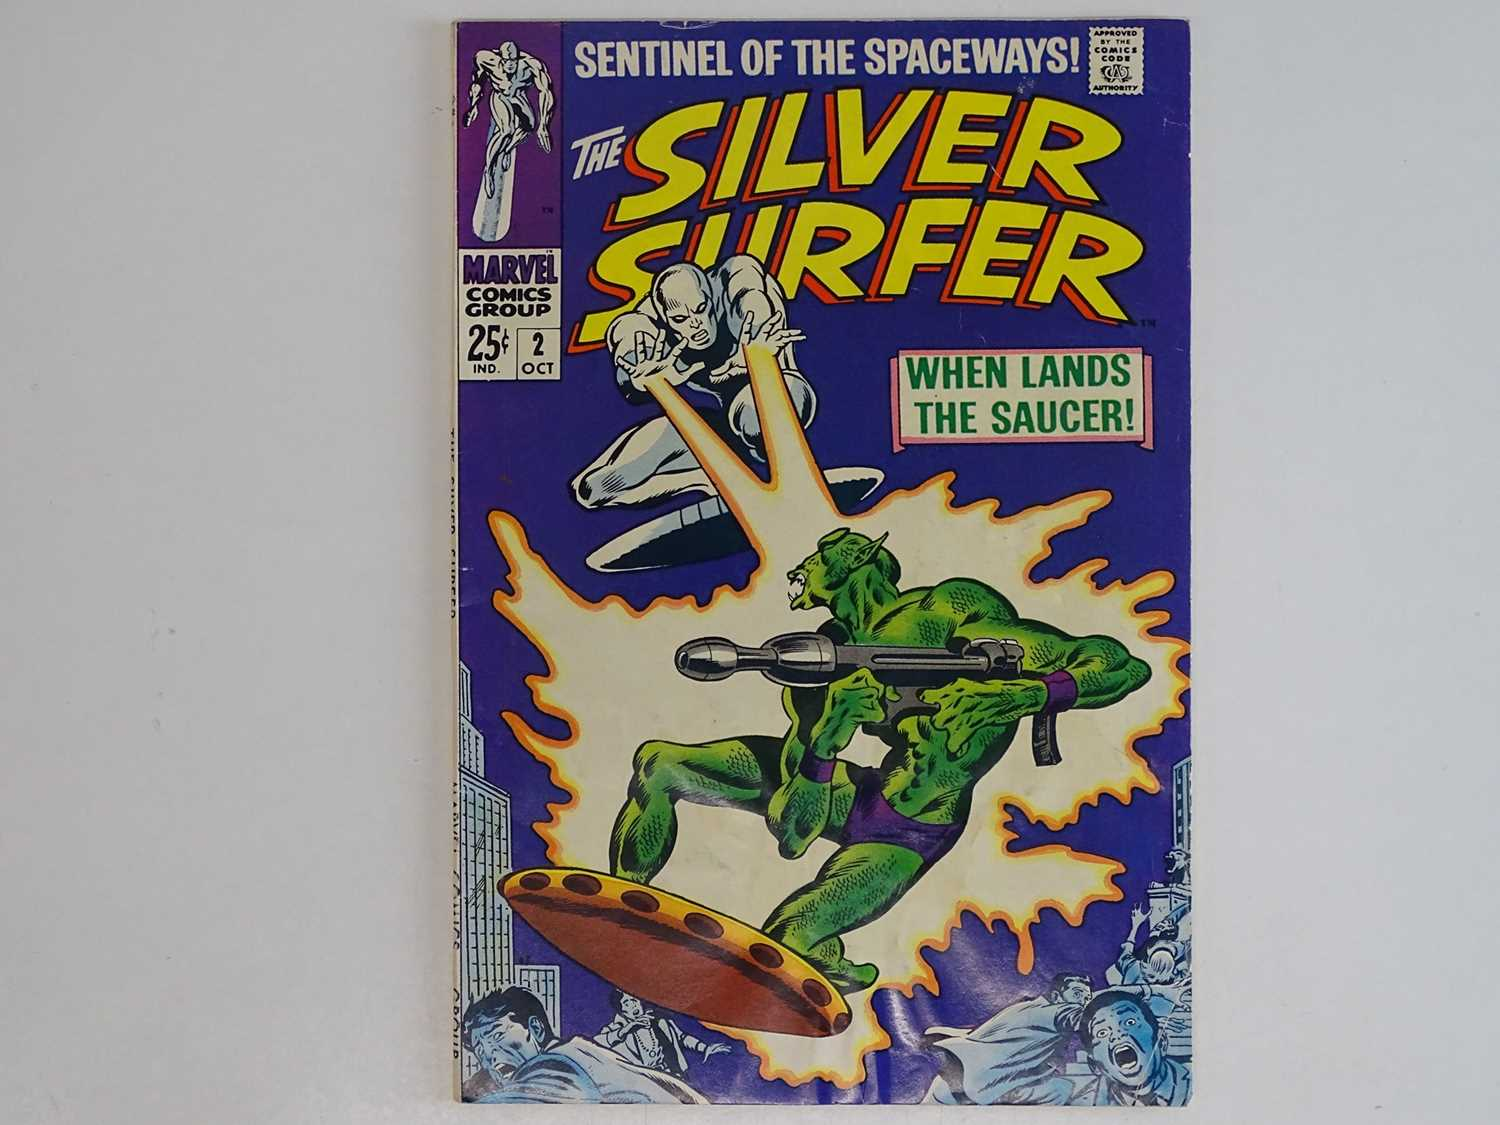 SILVER SURFER #2 - (1968 - MARVEL) - First appearance of the Brotherhood of Badoon + backup story